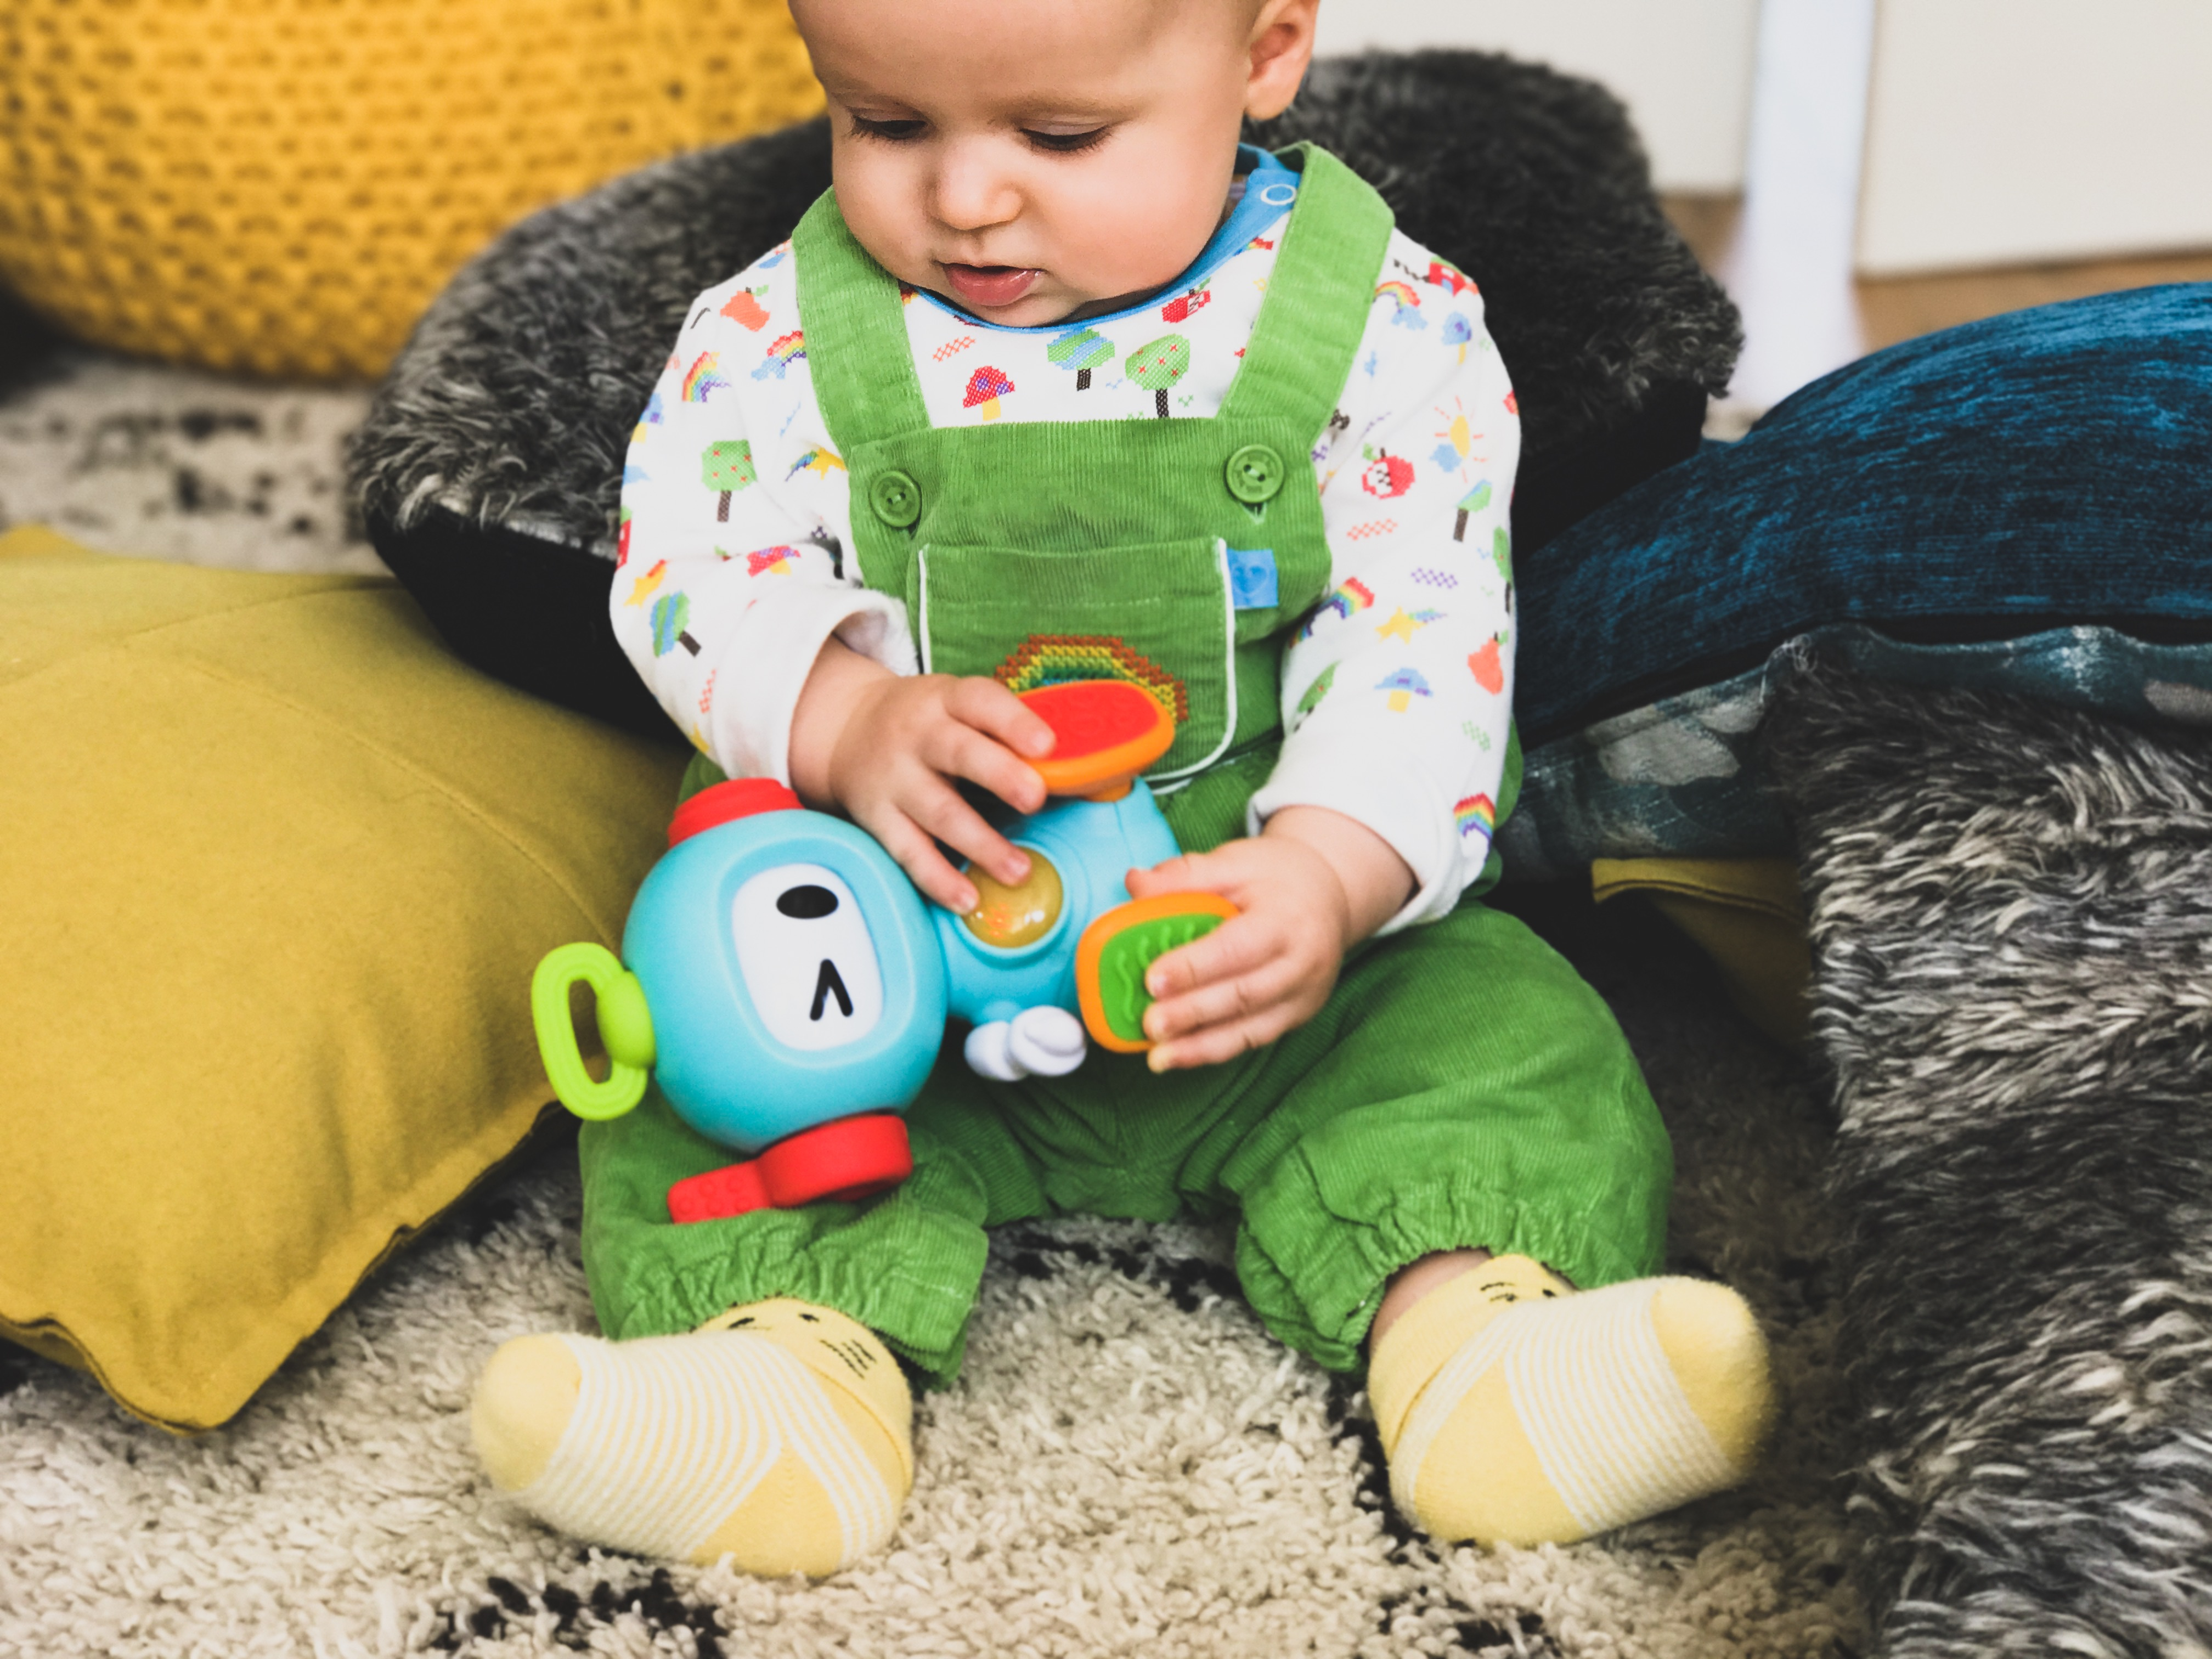 REVIEW BKIDS SENSORY TOYS Pouting In Heels